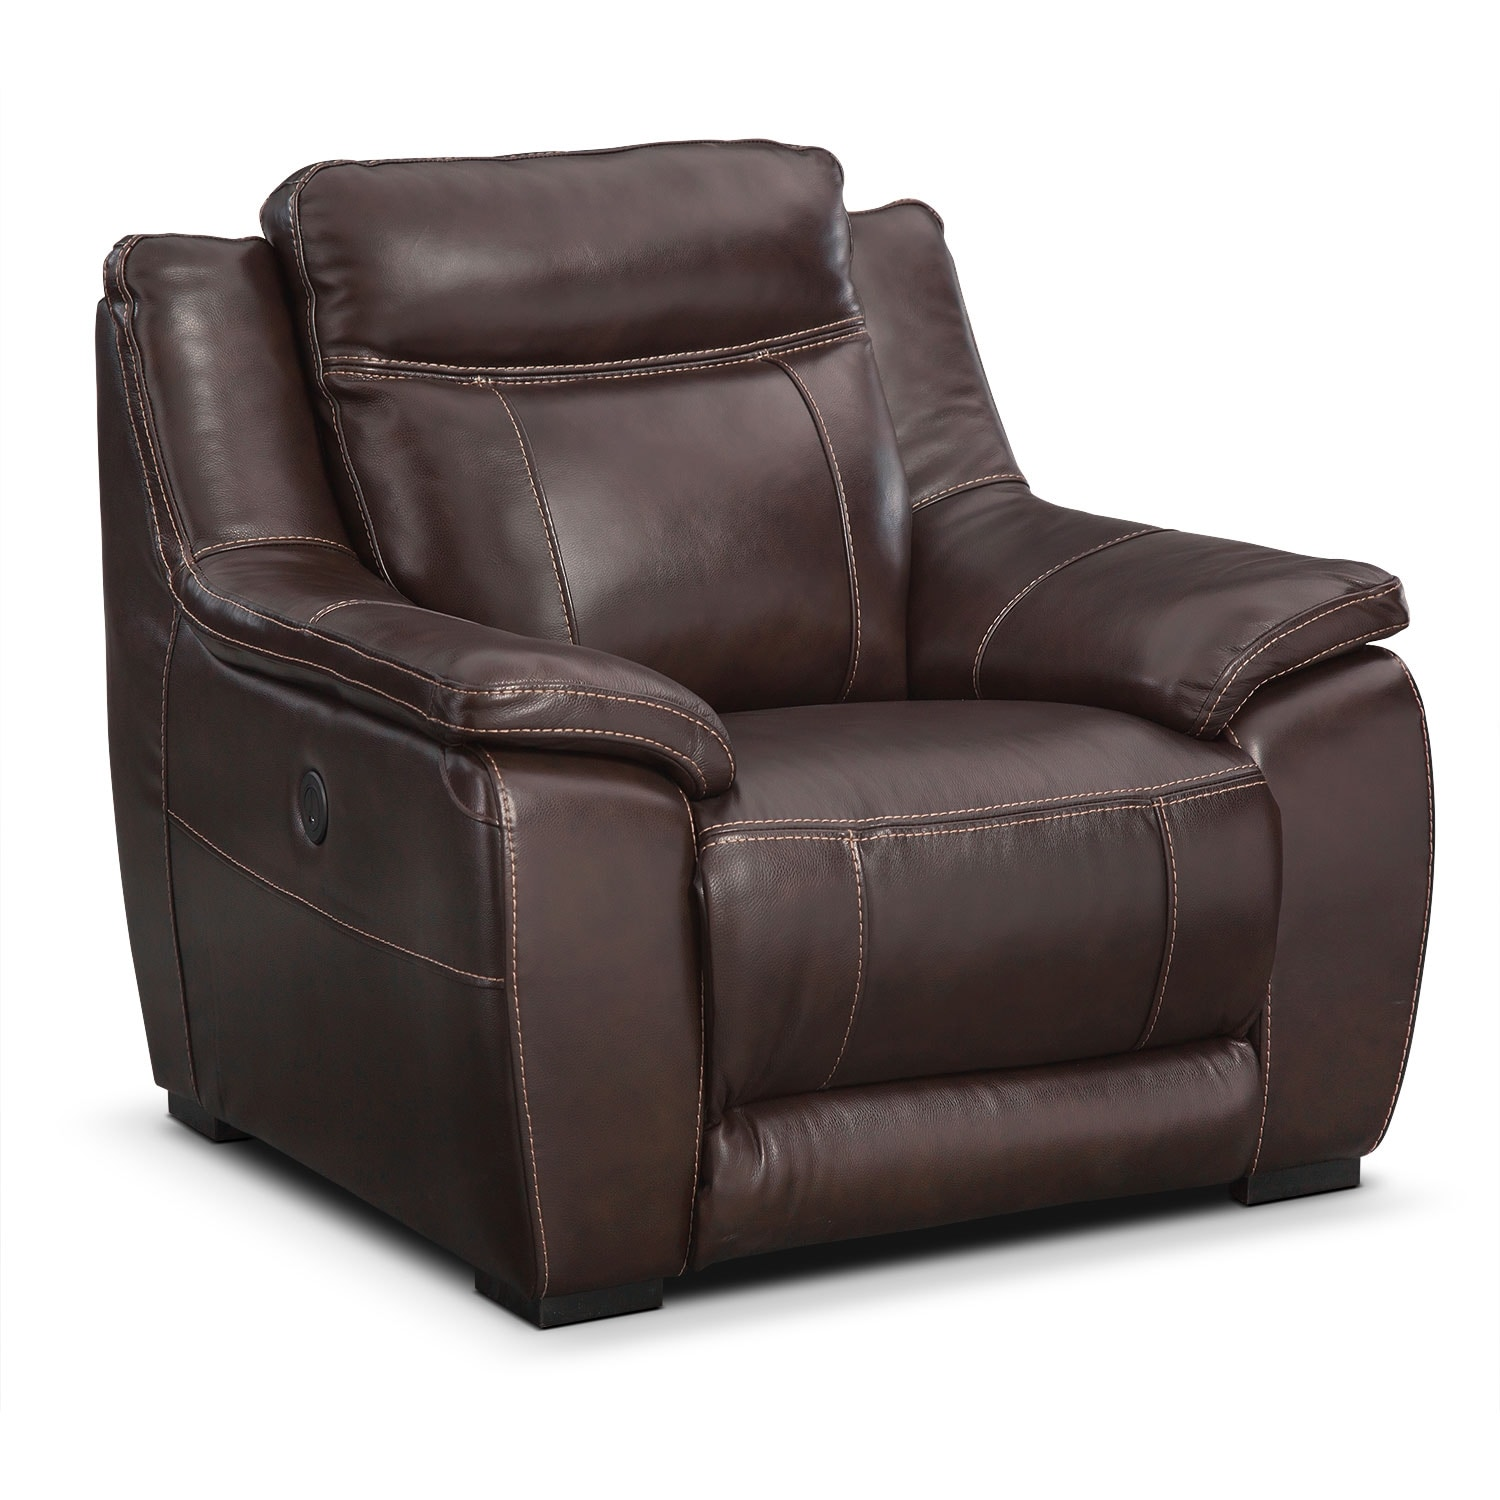 Lido Power Recliner - Brown